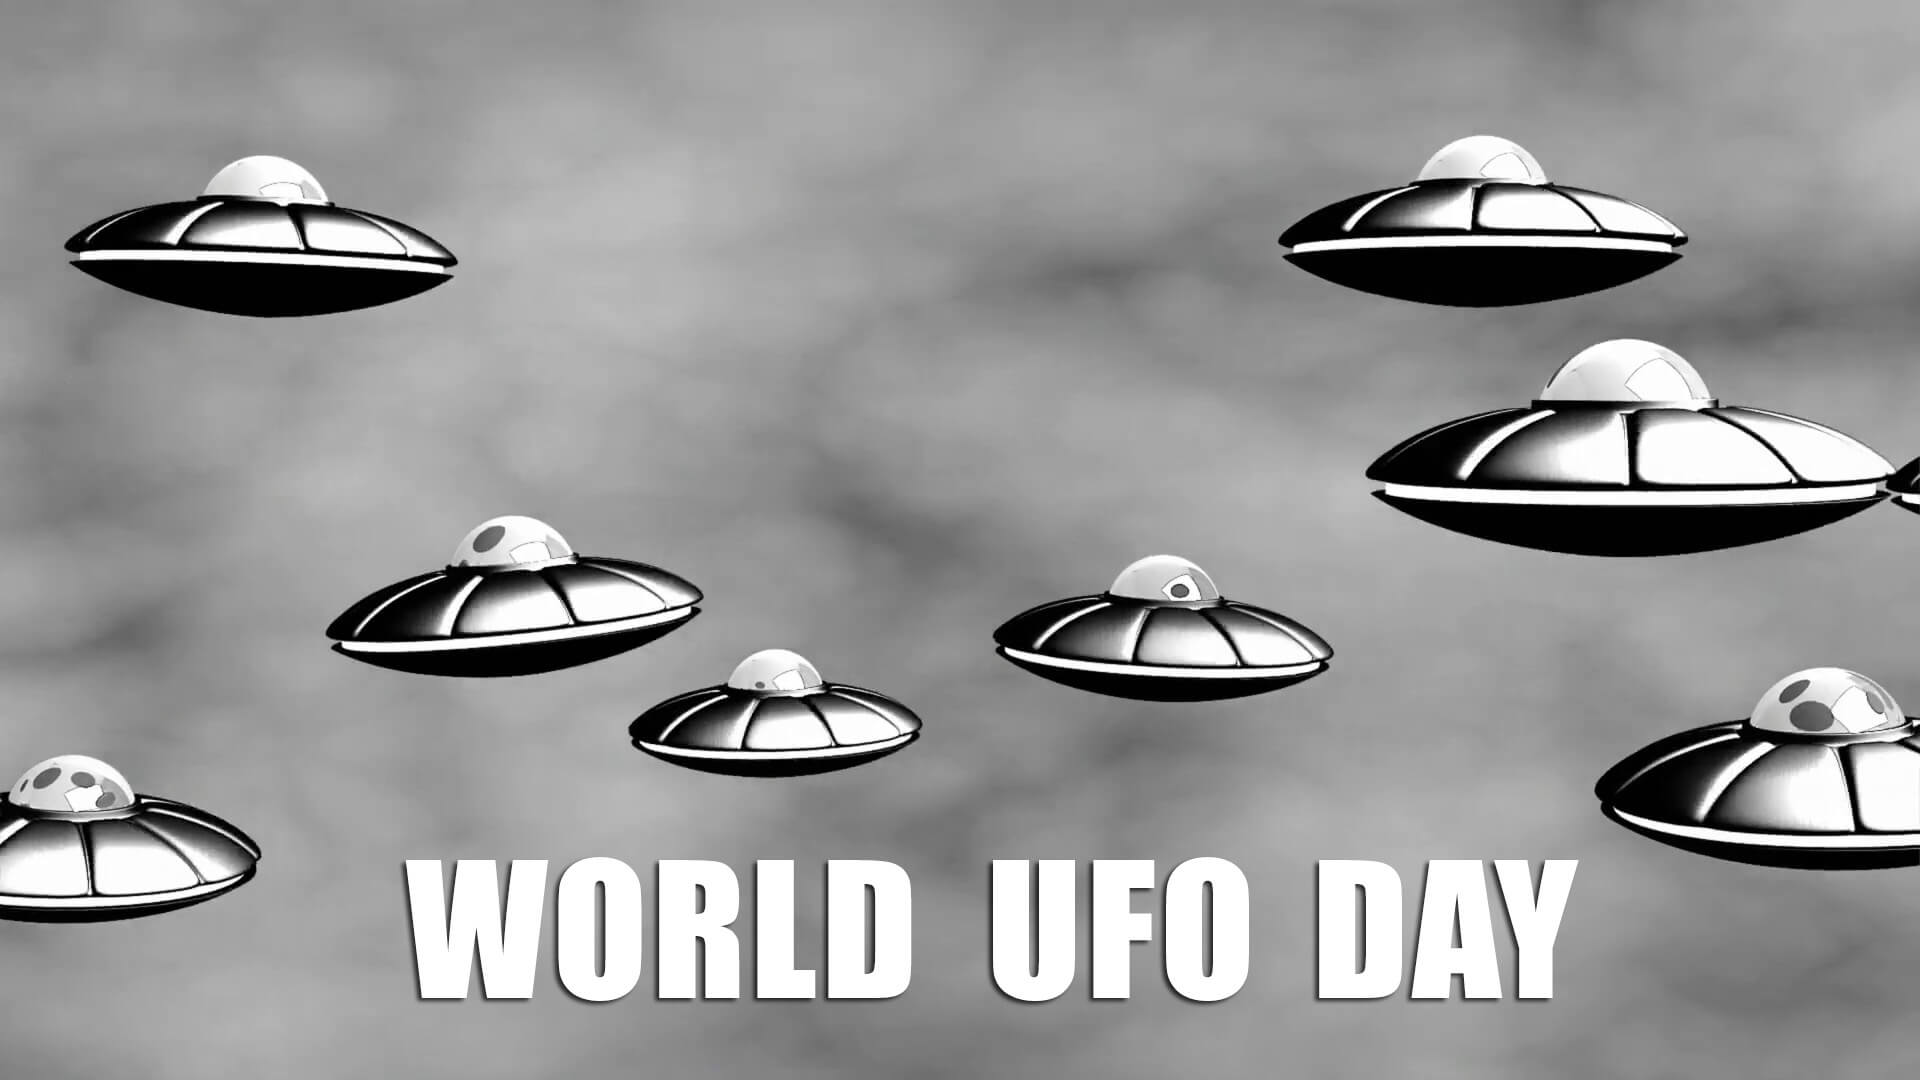 world ufo day unidentified flying object invasion saucer july hd wallpaper